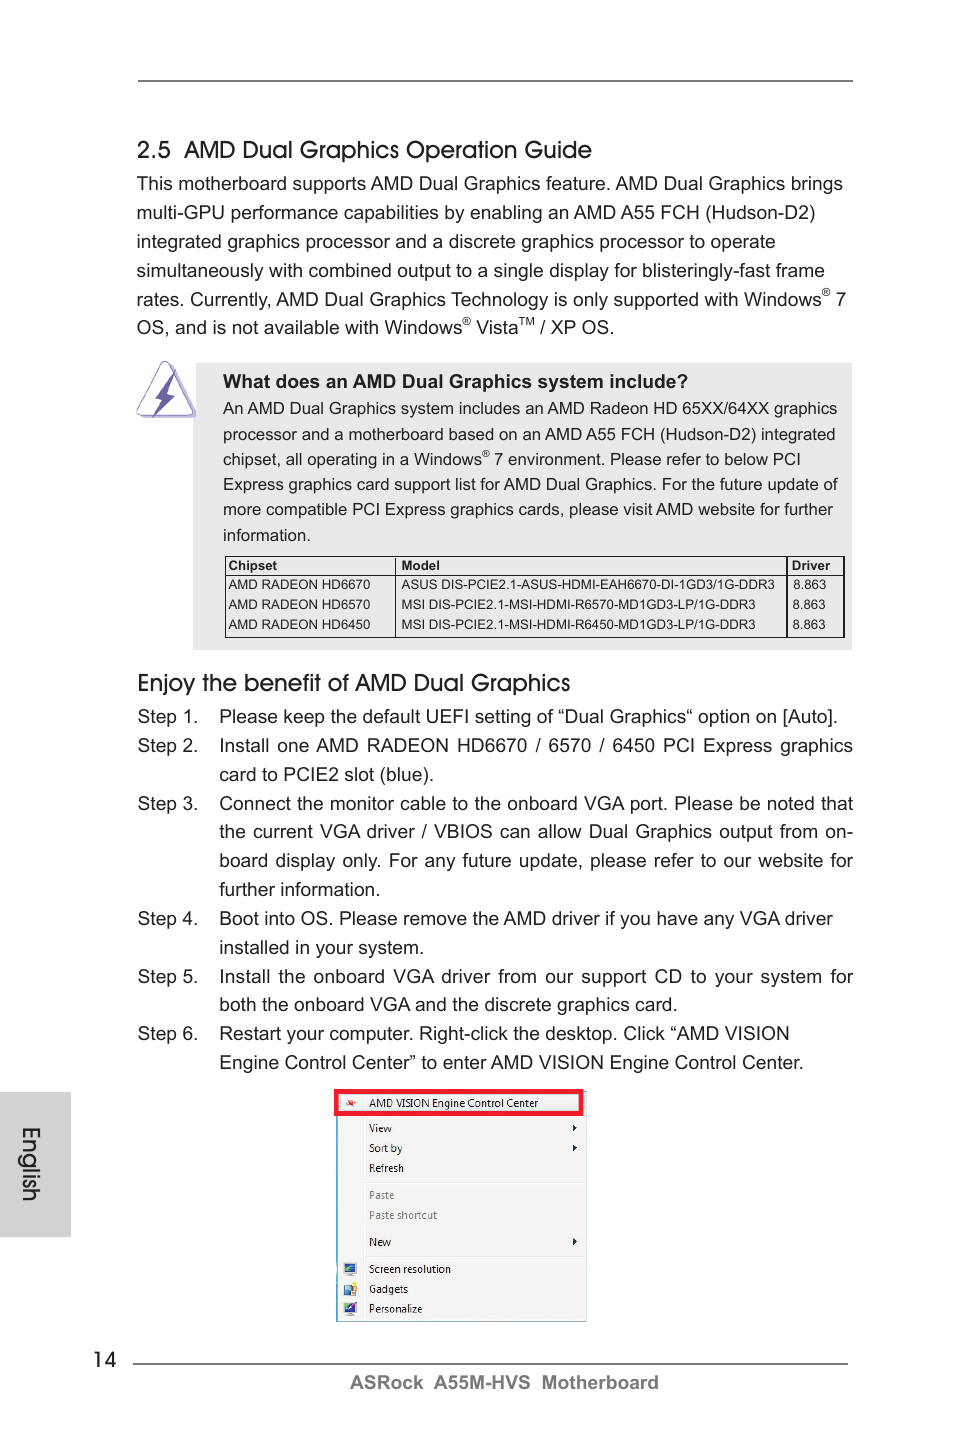 English 2 5 amd dual graphics operation guide, Enjoy the benefit of